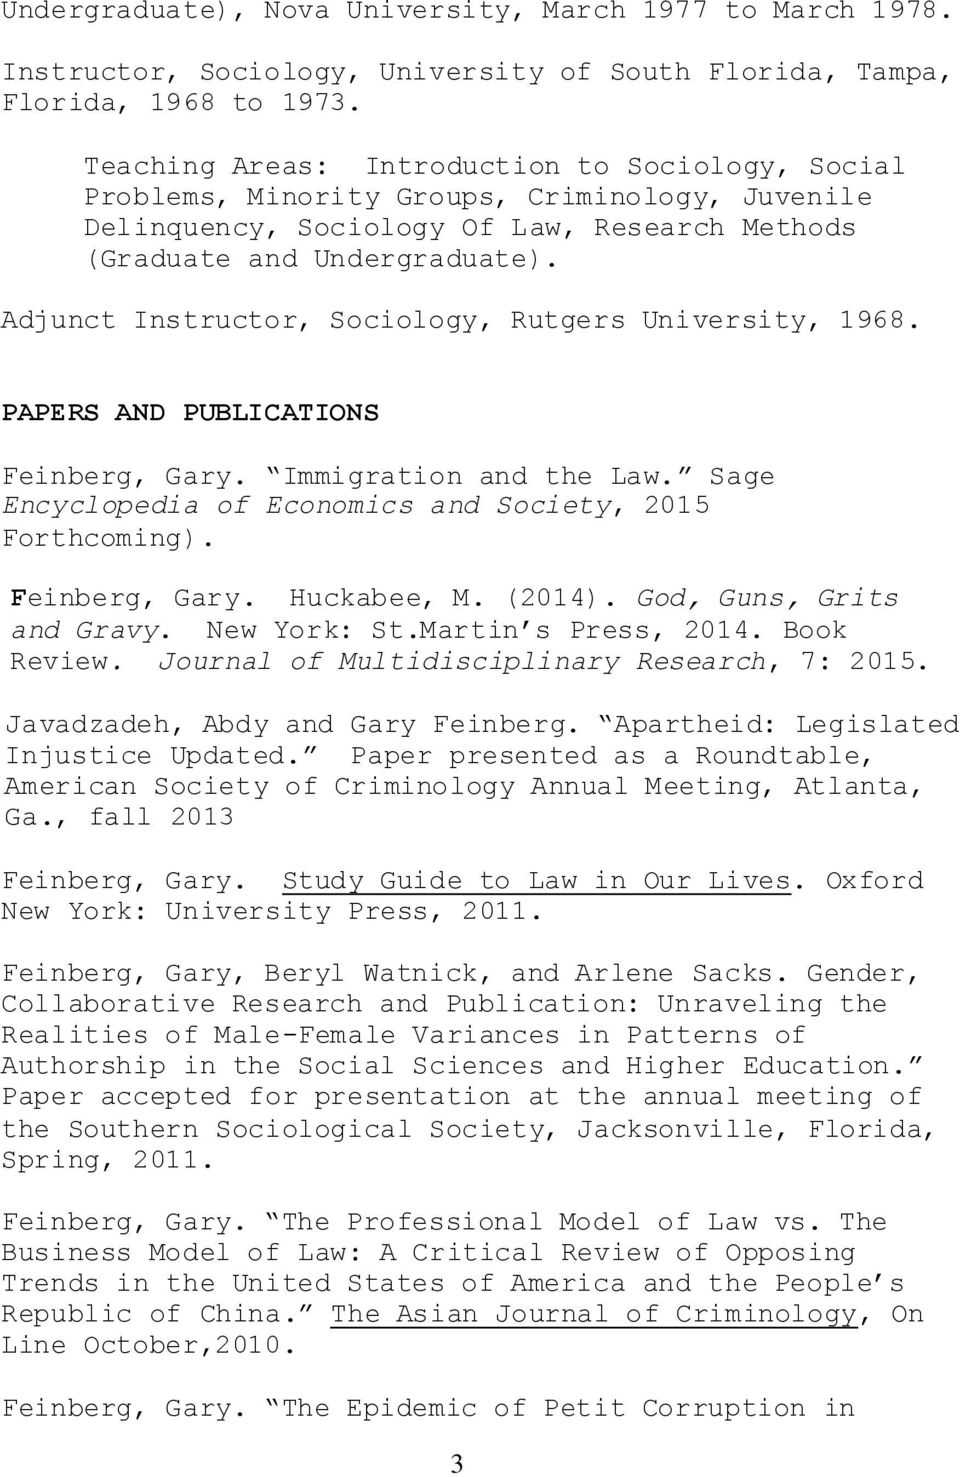 Adjunct Instructor, Sociology, Rutgers University, 1968. PAPERS AND PUBLICATIONS Feinberg, Gary. Immigration and the Law. Sage Encyclopedia of Economics and Society, 2015 Forthcoming). Feinberg, Gary. Huckabee, M.